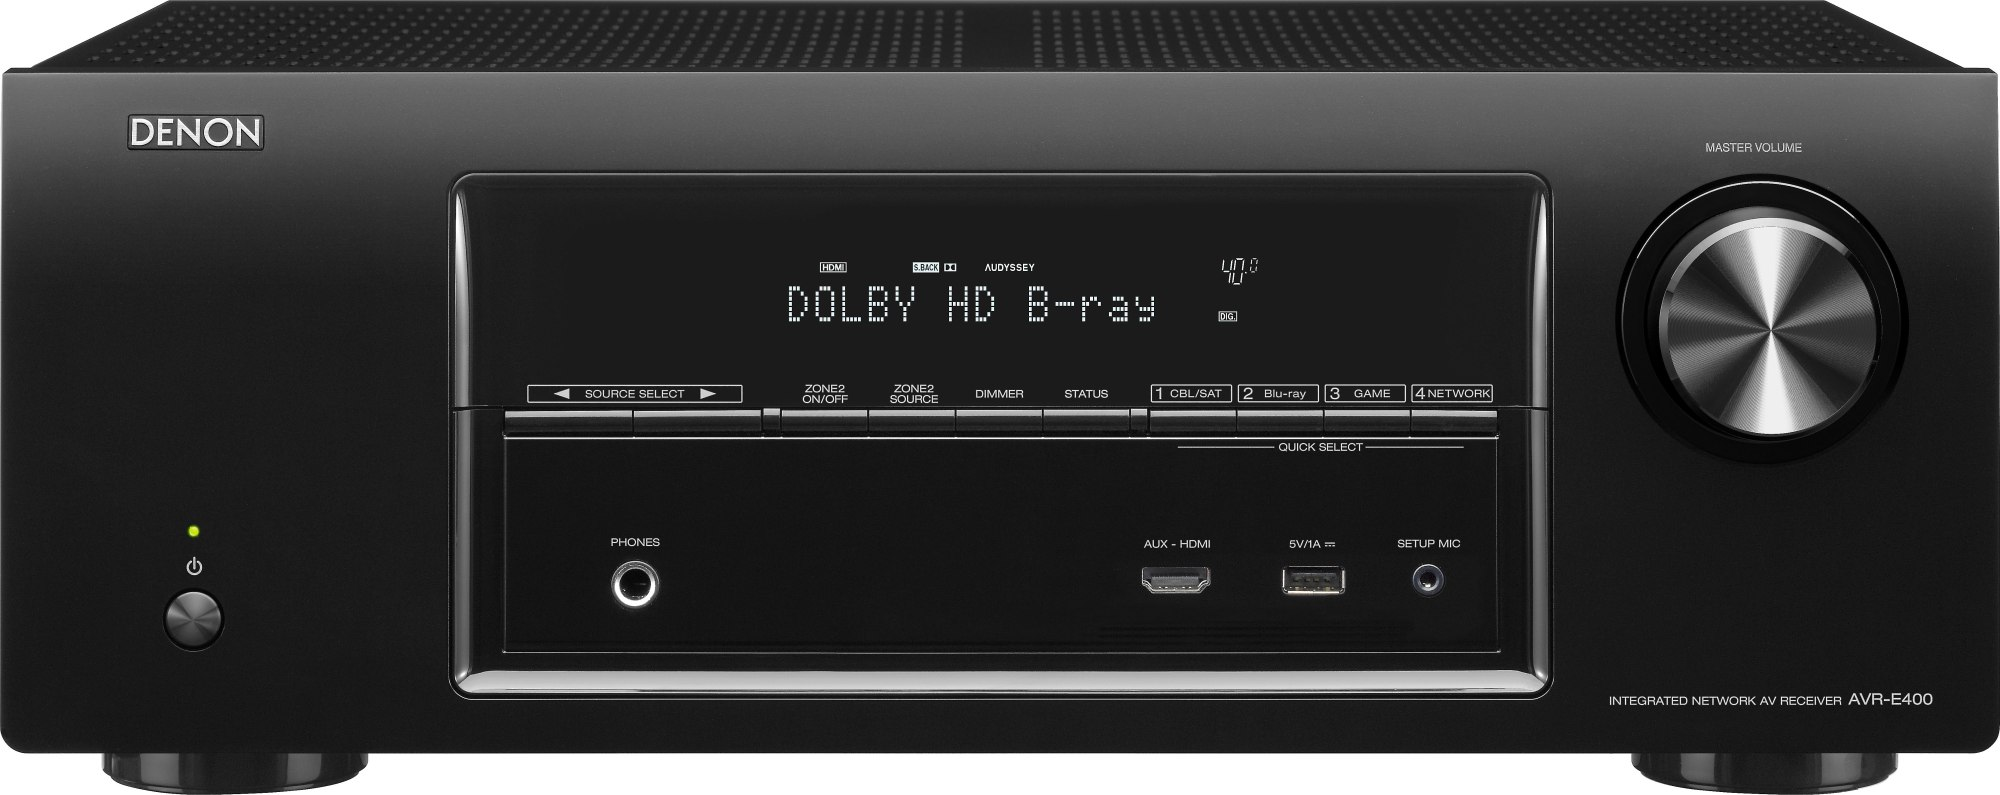 hight resolution of denon avr e400 7 1 channel home theater receiver with apple airplay at crutchfield com